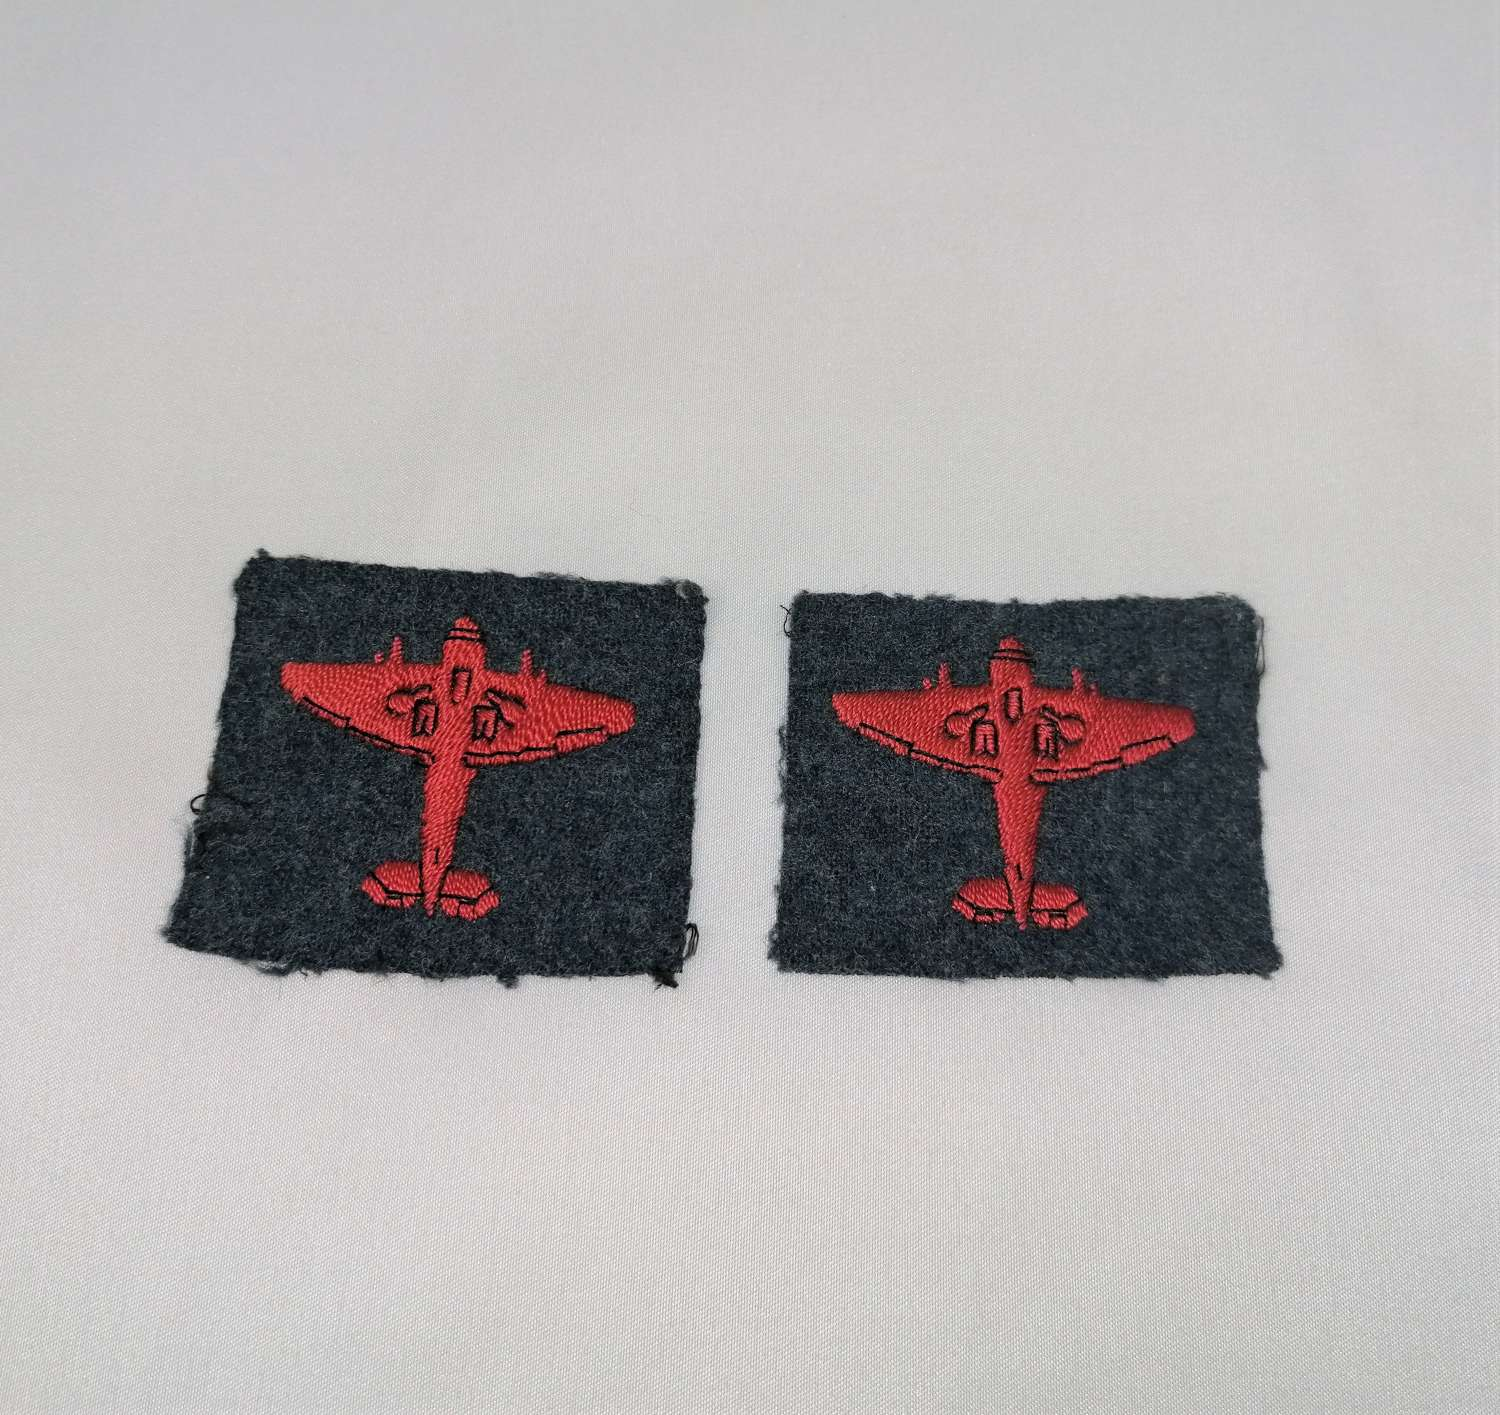 Post WW2 Royal Observer Corps Patches